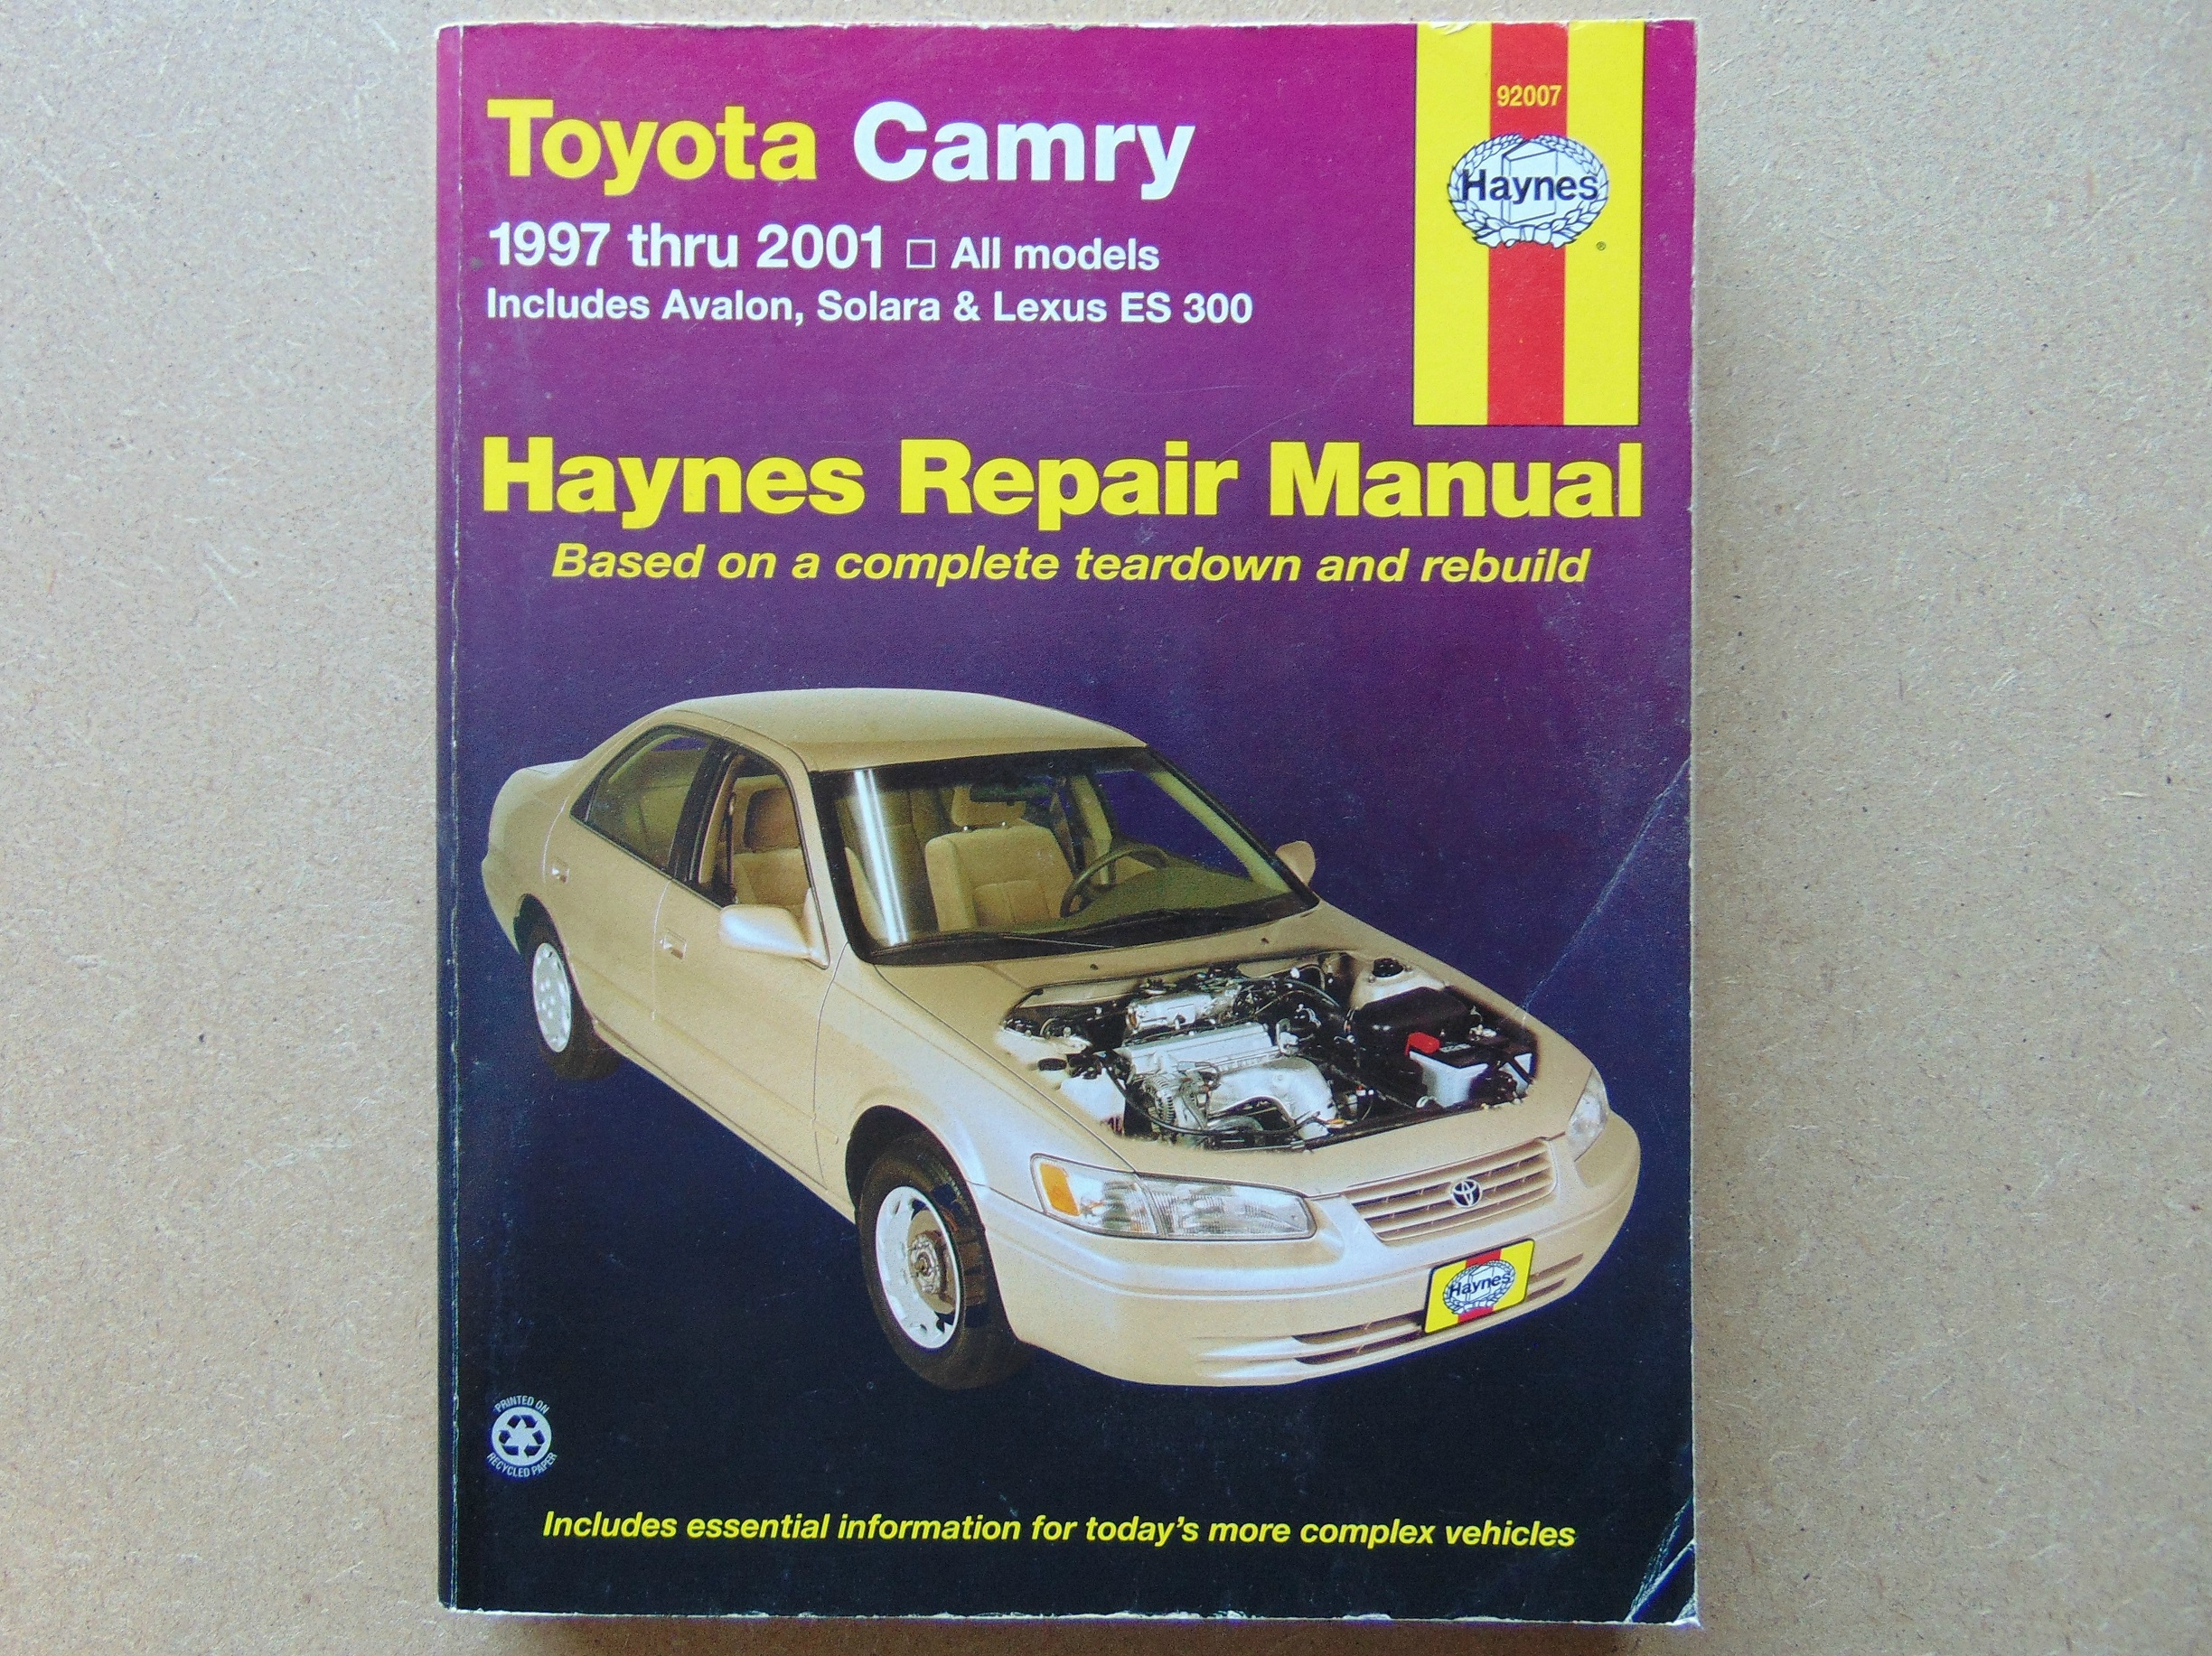 toyota camry haynes manual 1997 through 2001 covers. Black Bedroom Furniture Sets. Home Design Ideas